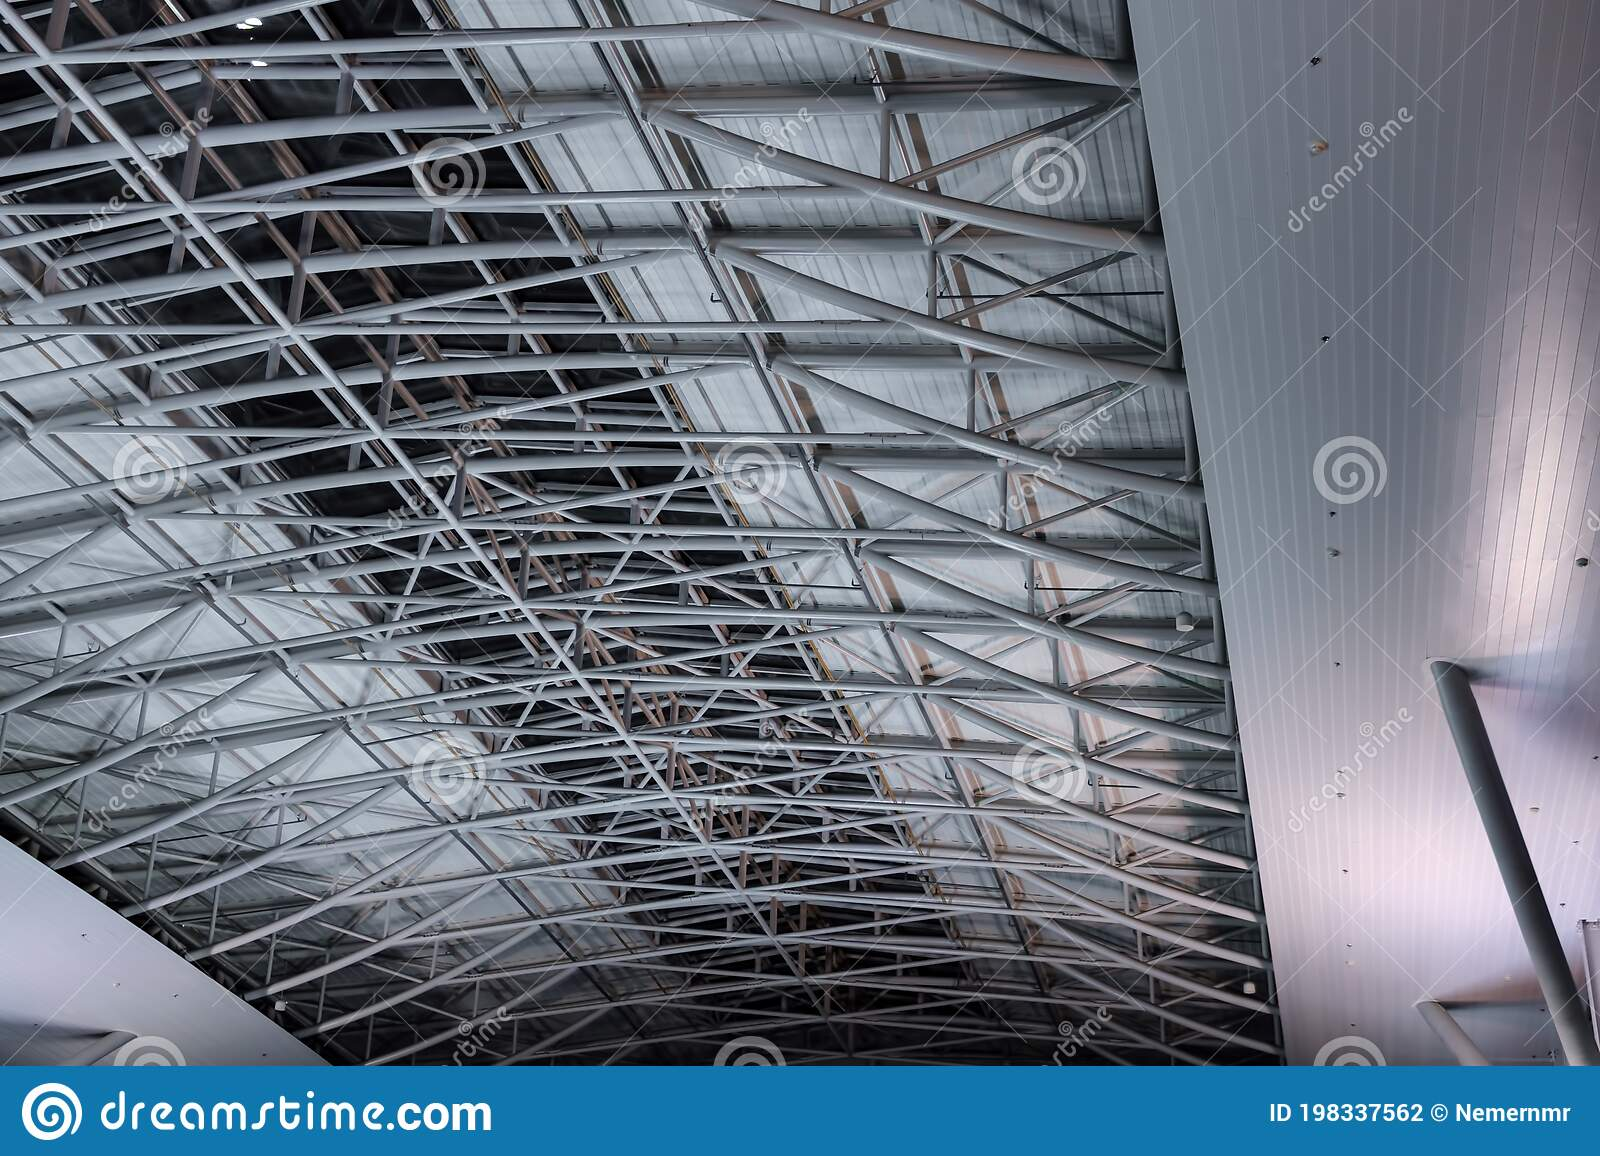 metal pipe roof construction ceiling in a large room lighting and ventilation materials the interior of the room construction stock photo image of house architectural 198337562